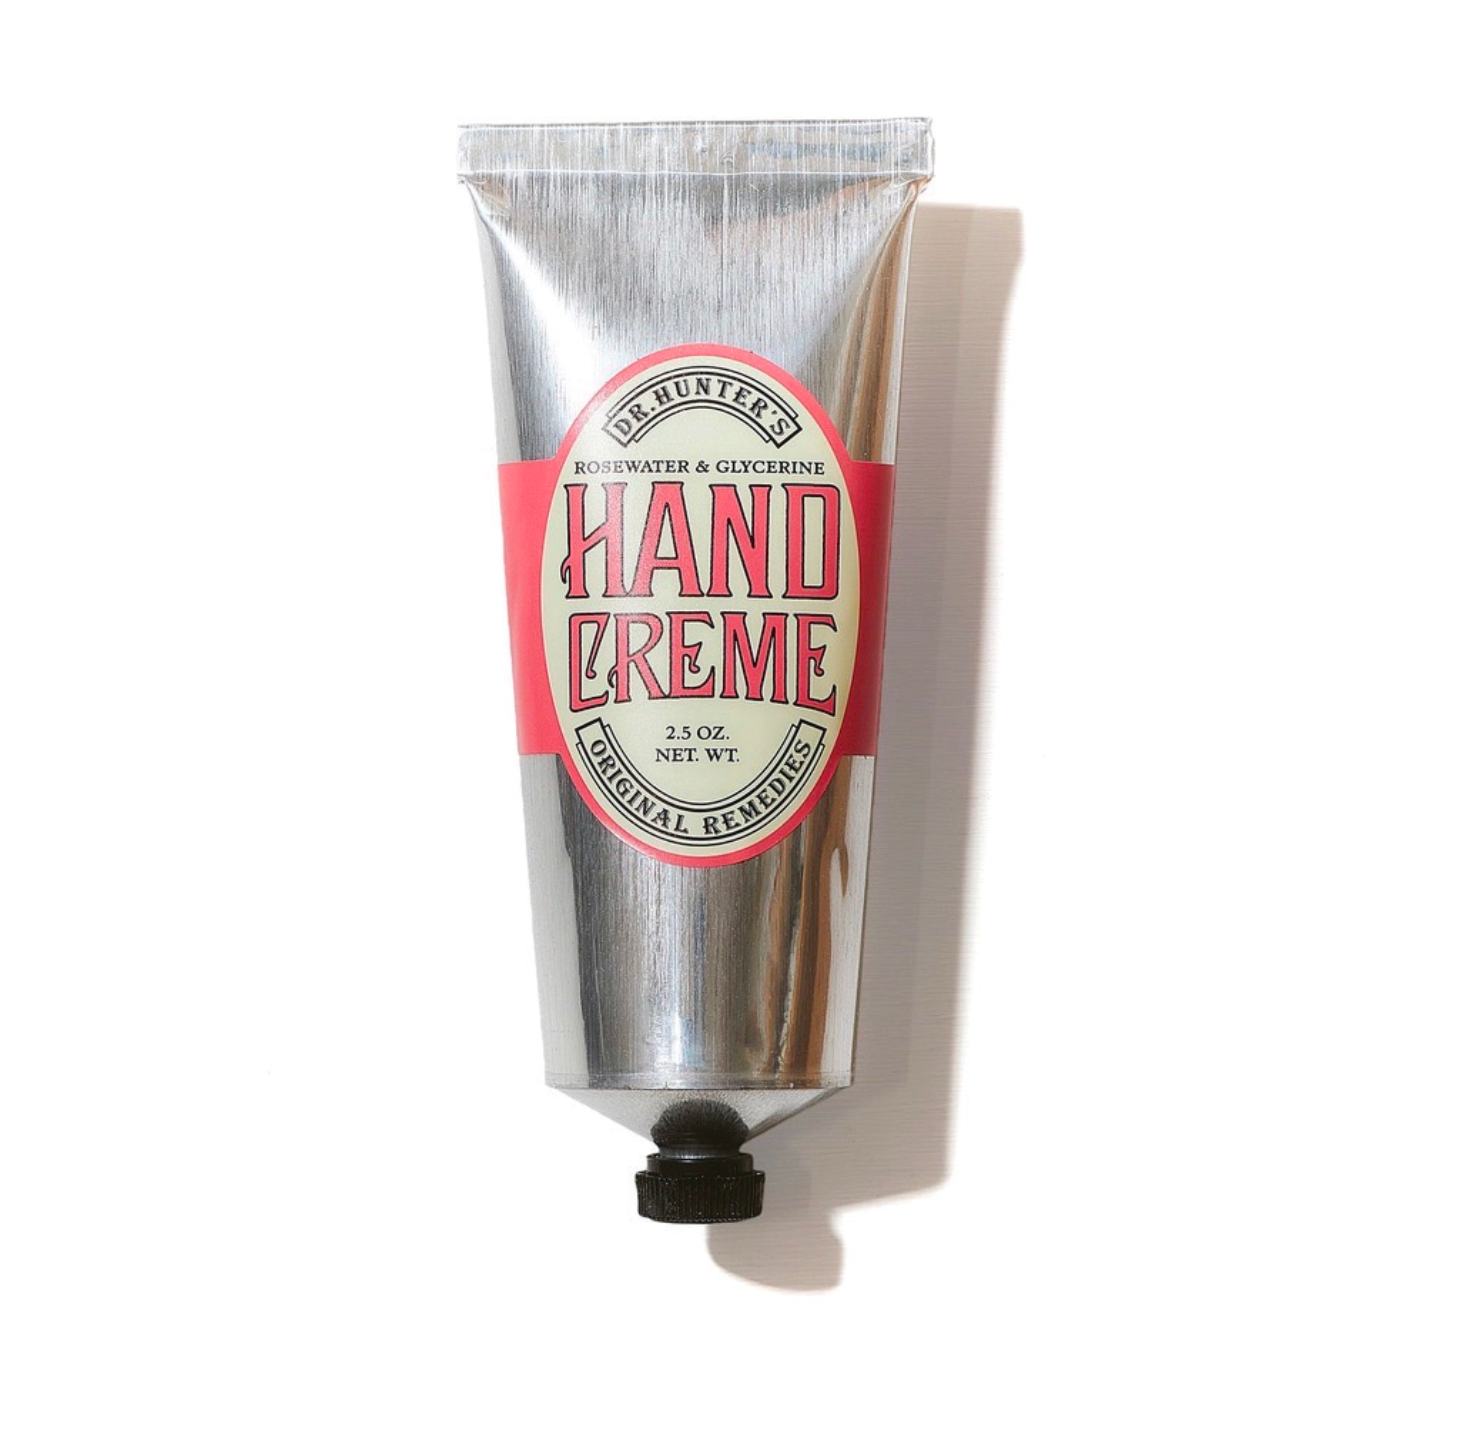 Drr. Hunter's Hand Cream